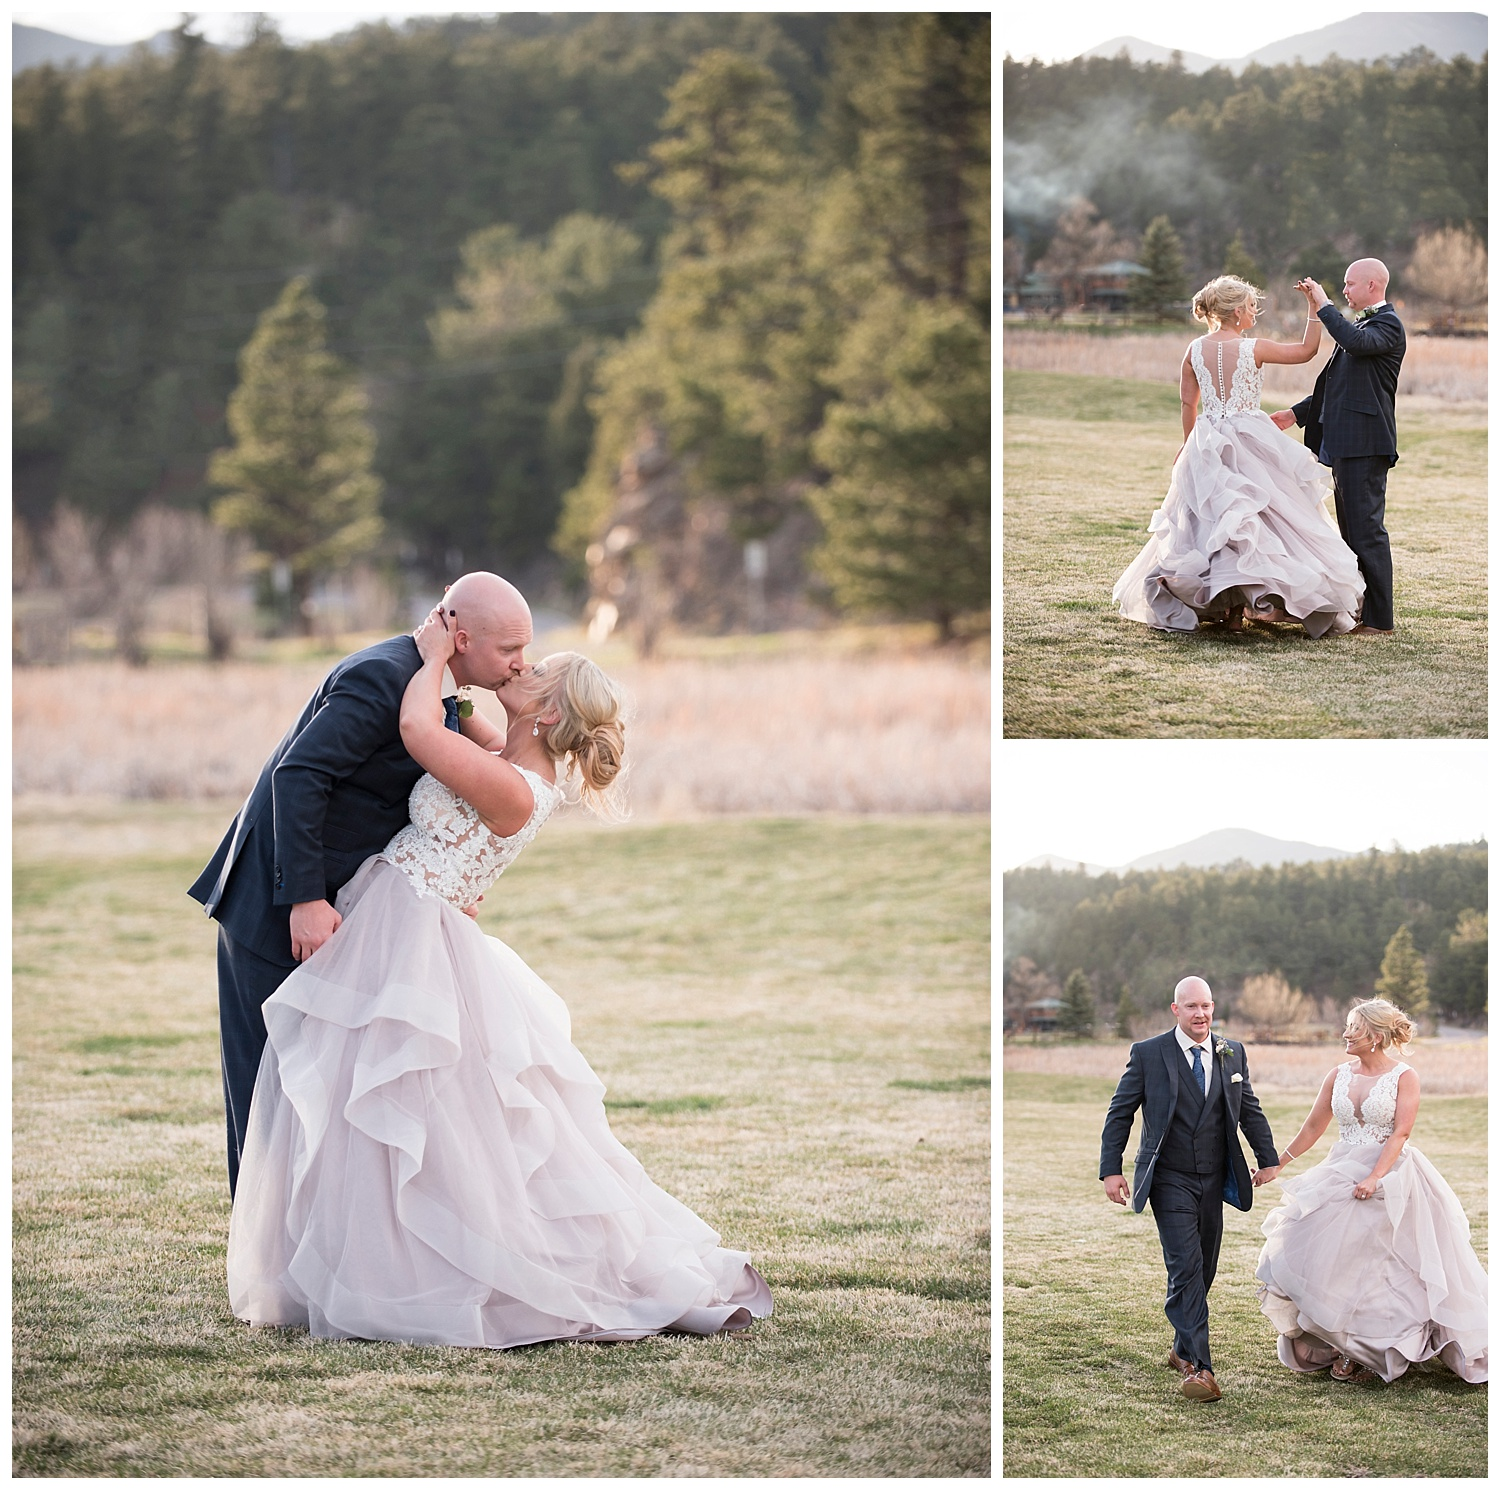 Evergreen_Lake_House_Colorado_Wedding_Photographer_Apollo_Fields_Photography_163.jpg